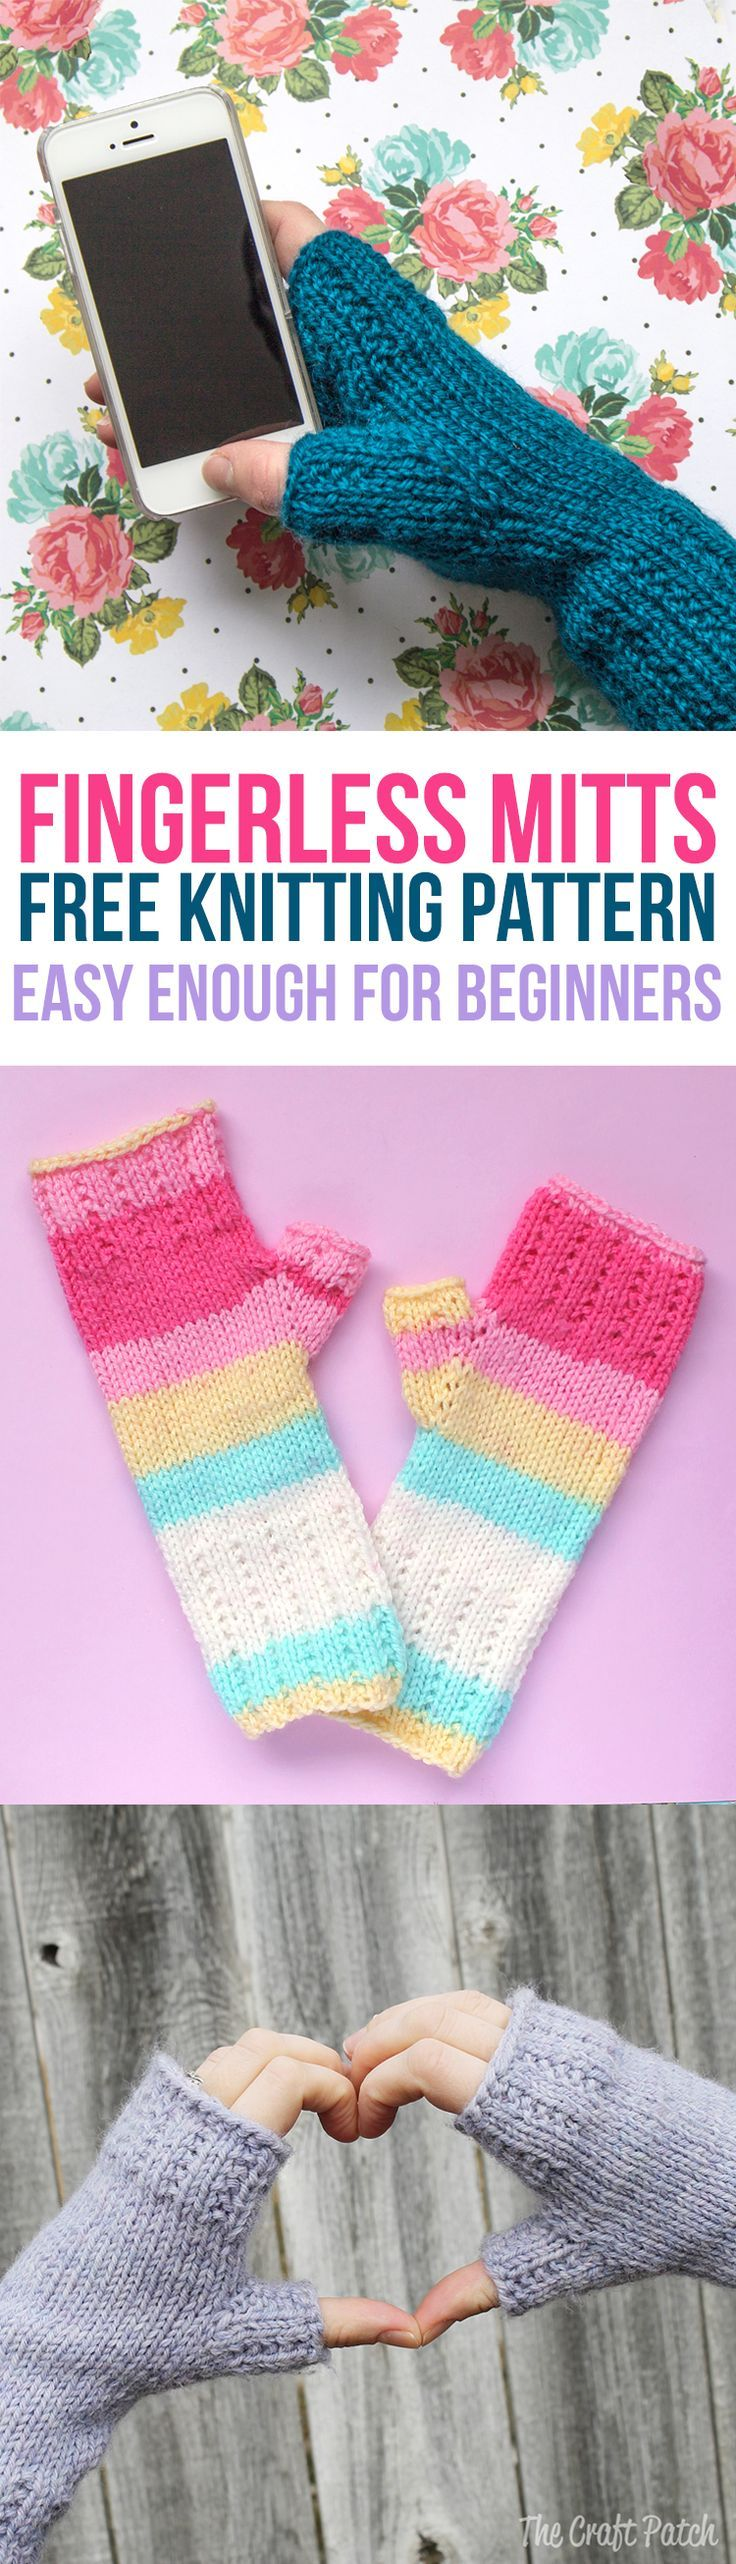 178 best images about knitting on pinterest free pattern quick free beginner knitting pattern and tutorial to teach you how to knit a pair of fingerless bankloansurffo Choice Image